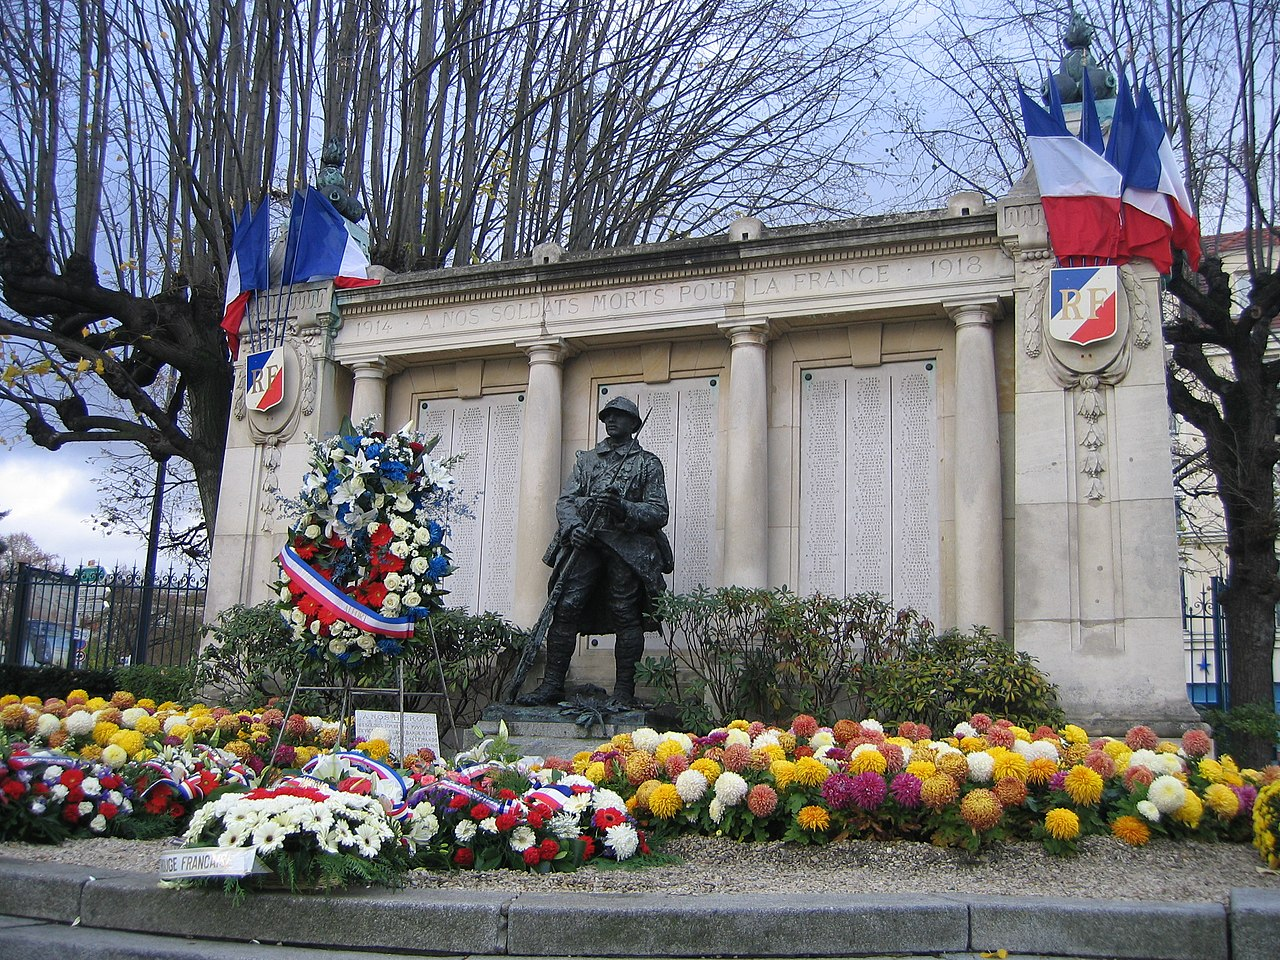 file monument aux morts de maisons alfort le 11 novembre jpg wikimedia commons. Black Bedroom Furniture Sets. Home Design Ideas